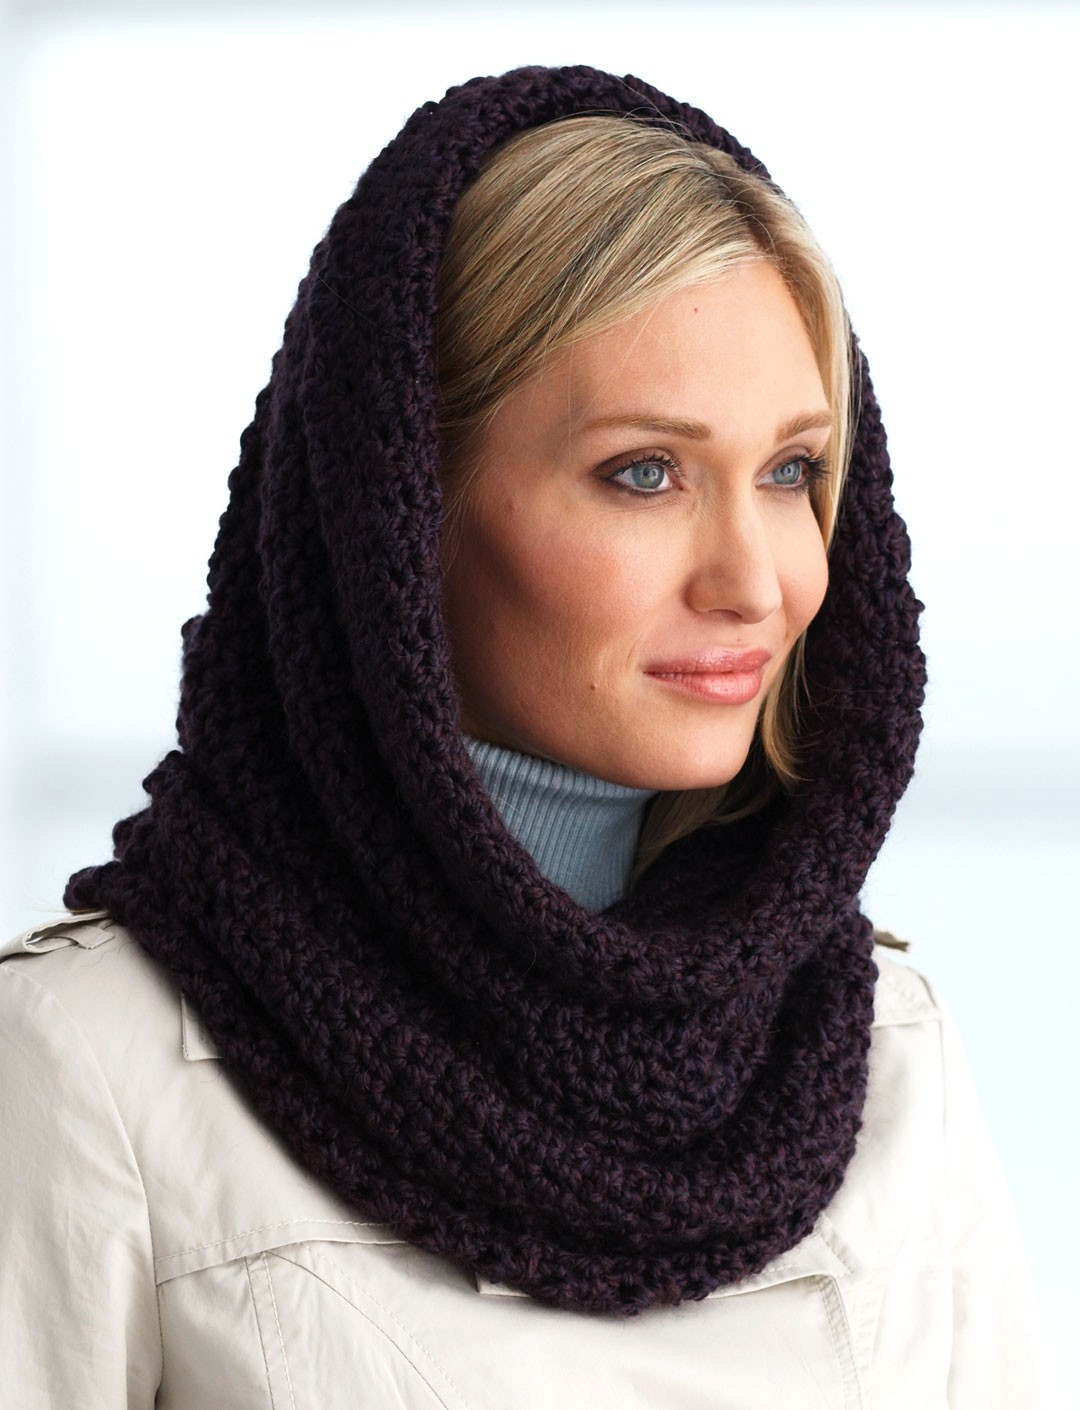 Easy Knitted Hooded Scarf Pattern Free : Bernat Hooded Cowl (Pattern) Yarnspirations